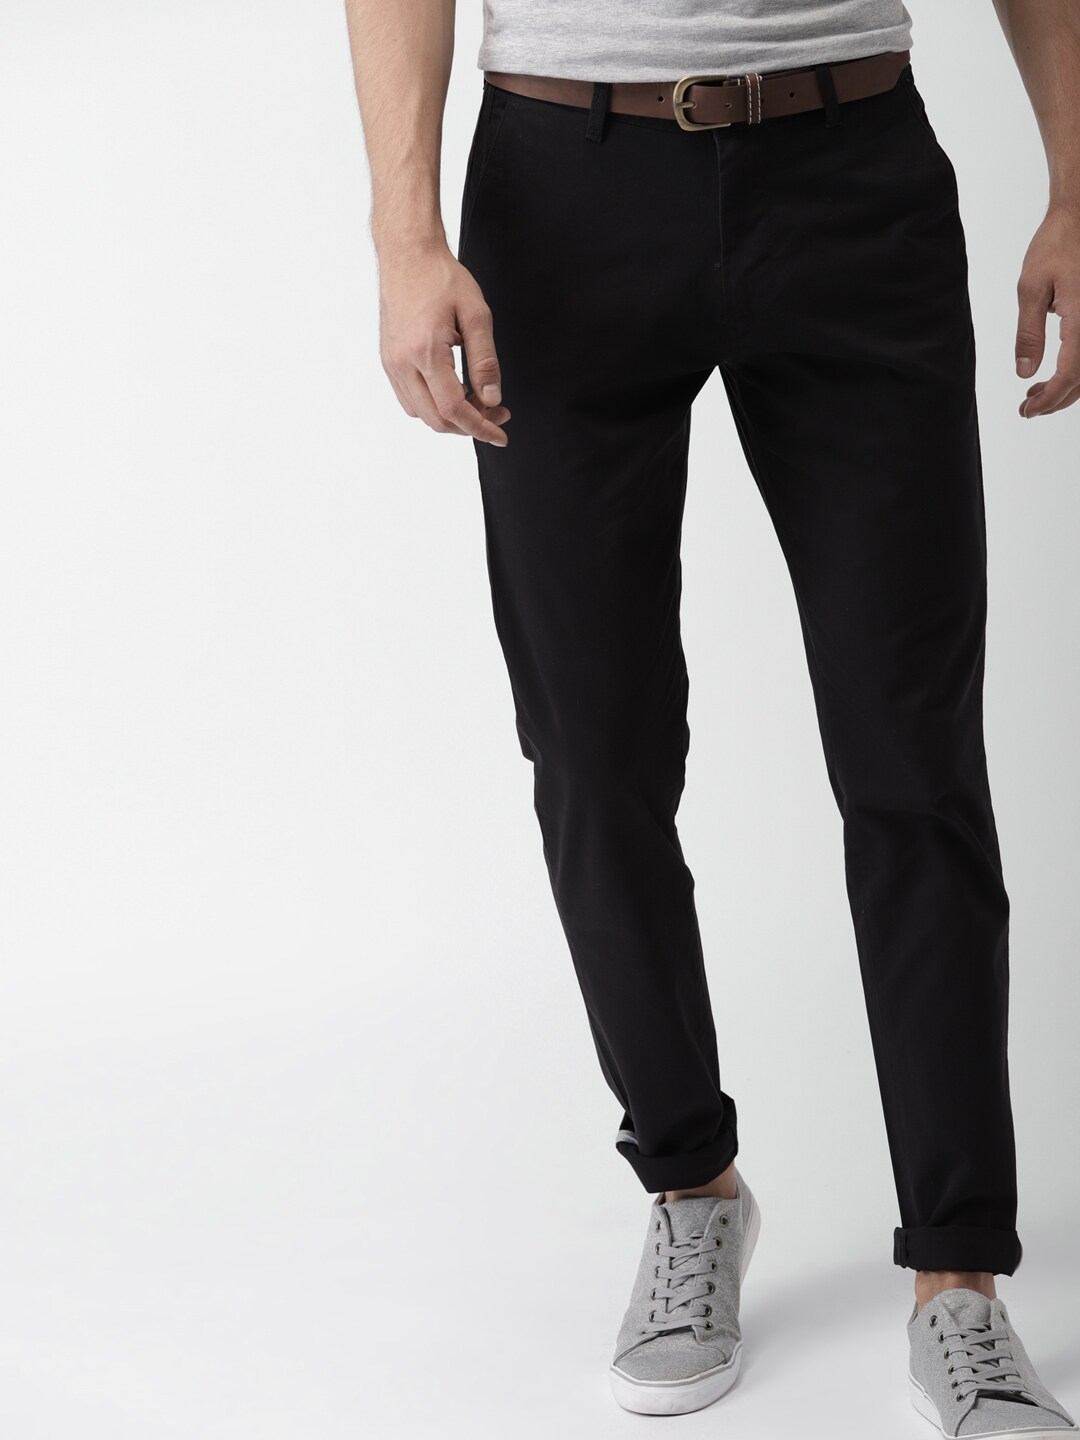 Black Chinos - Buy Black Chinos online in India 5d2fabd58